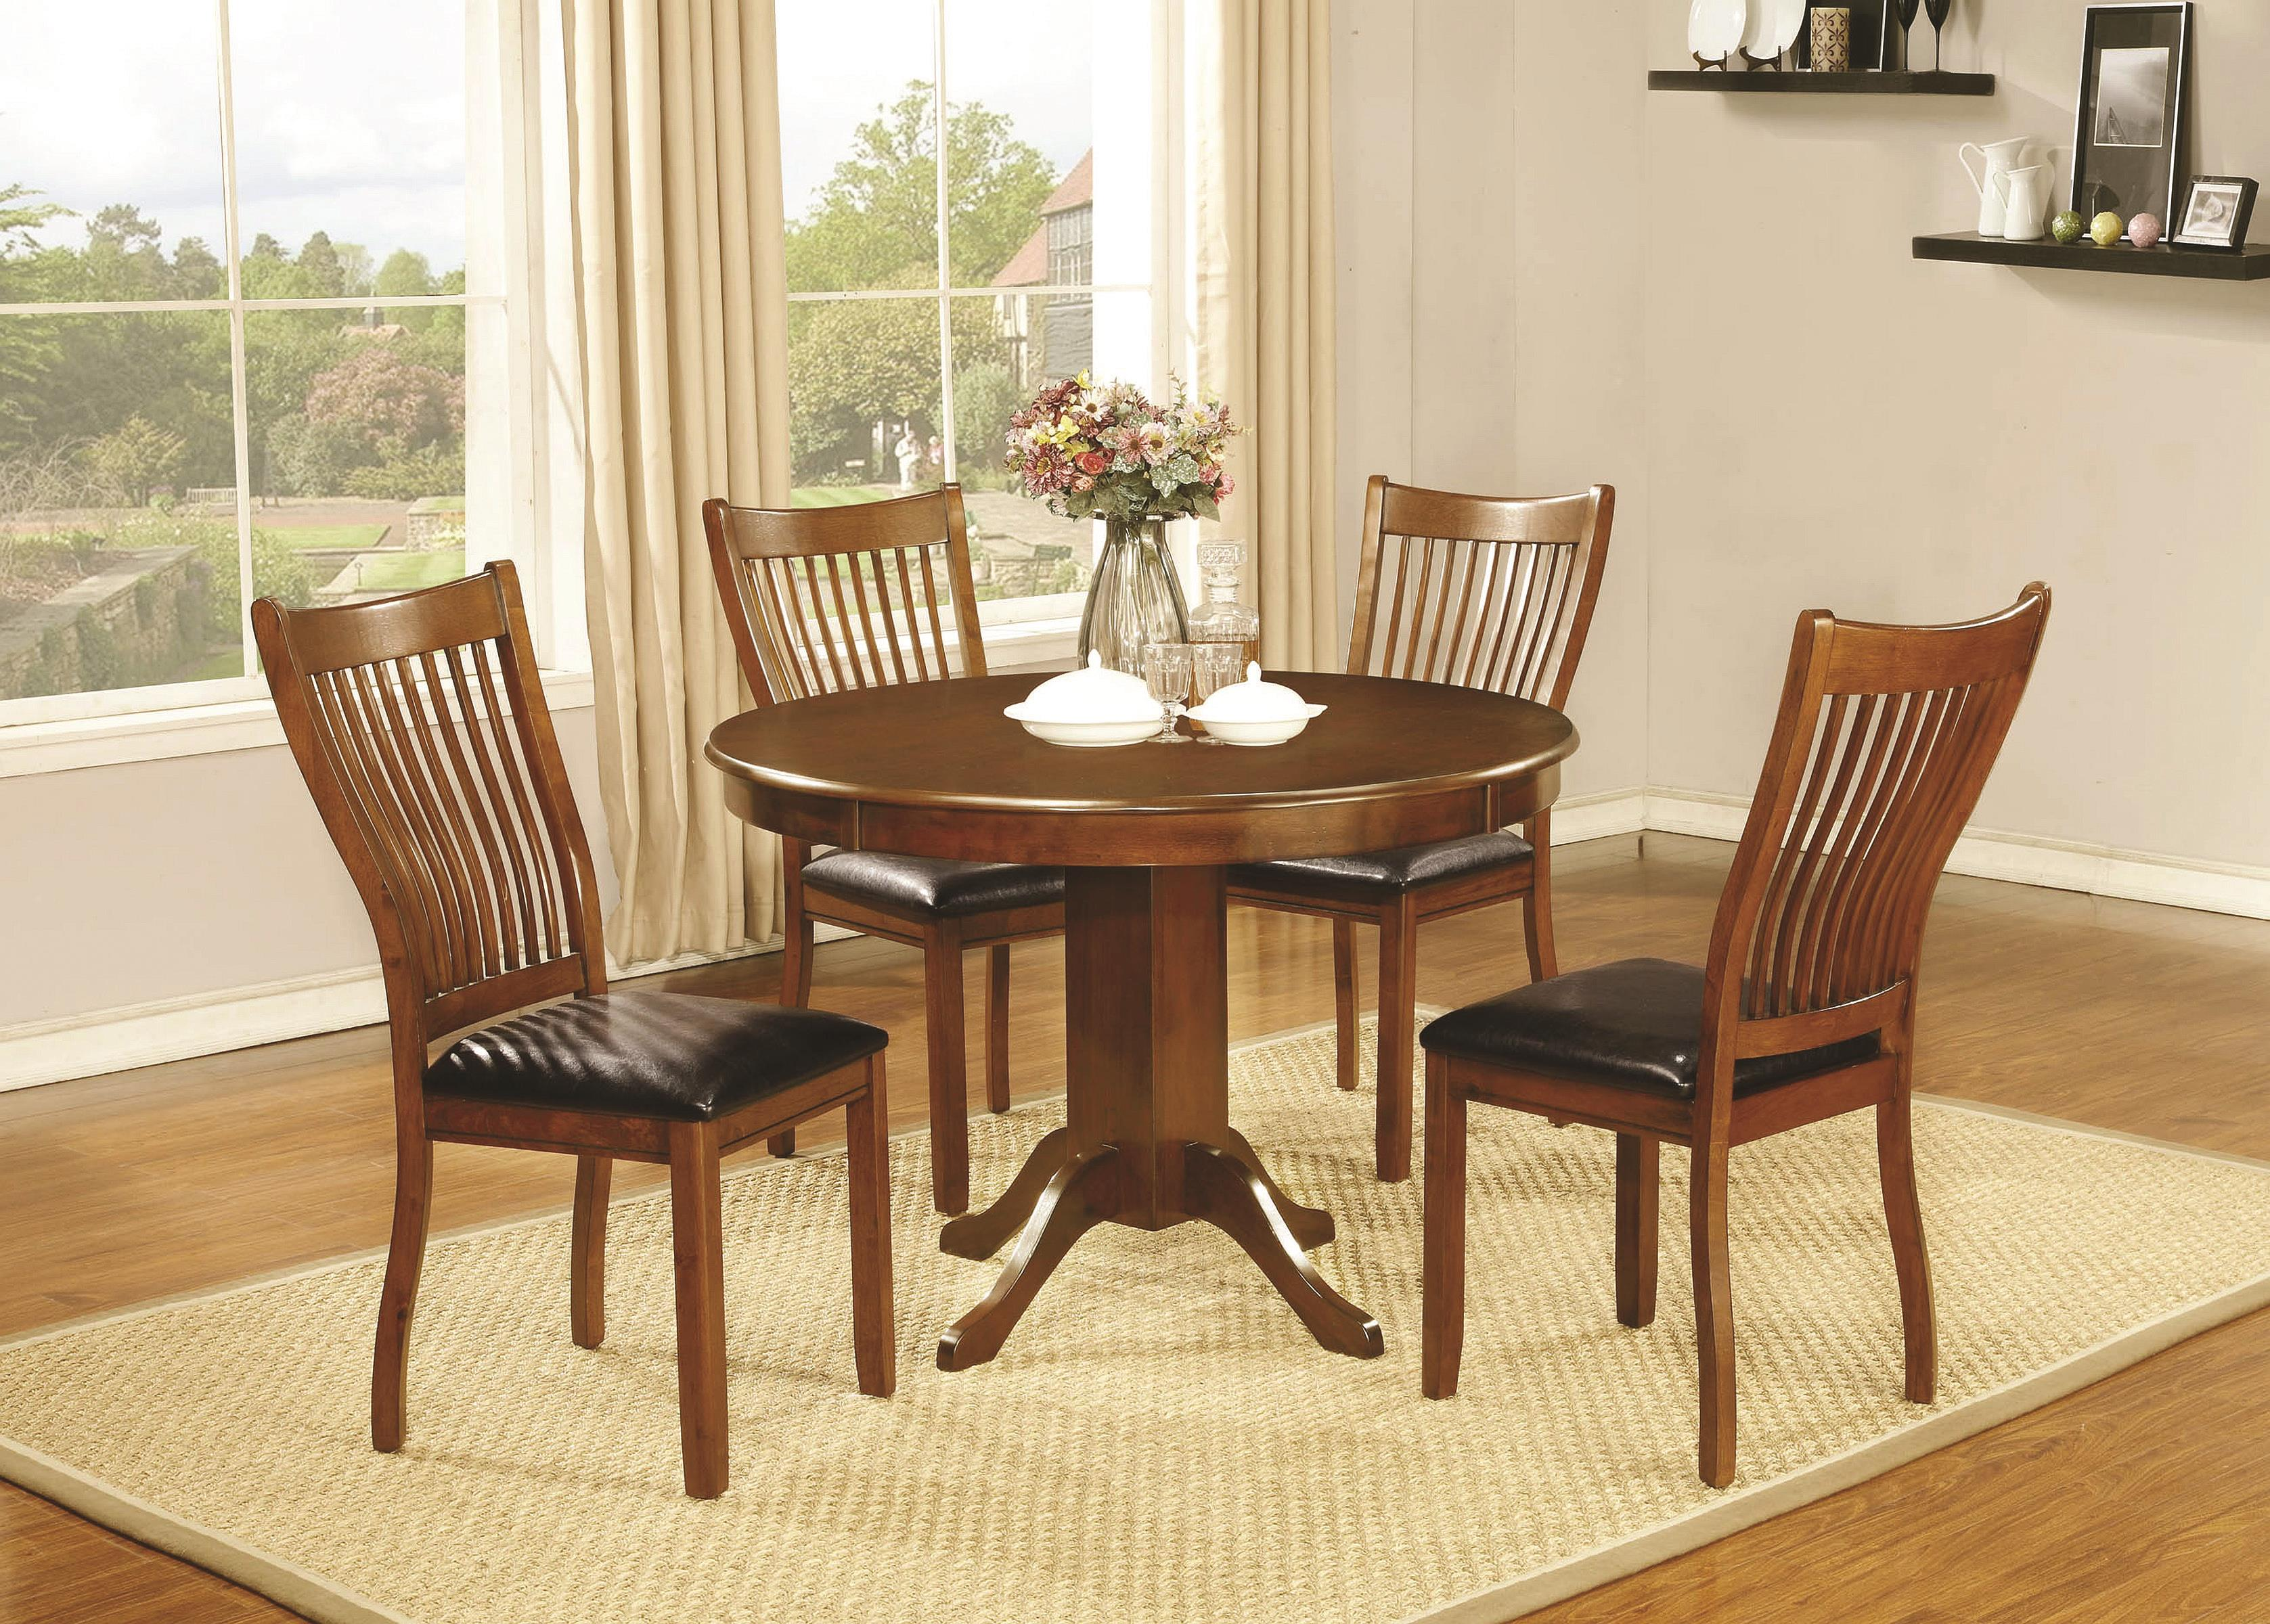 Attractive 7 Piece Dining Set With Rectangular Table Sierra By Coaster  Wilcox Furniture Dining 7 (